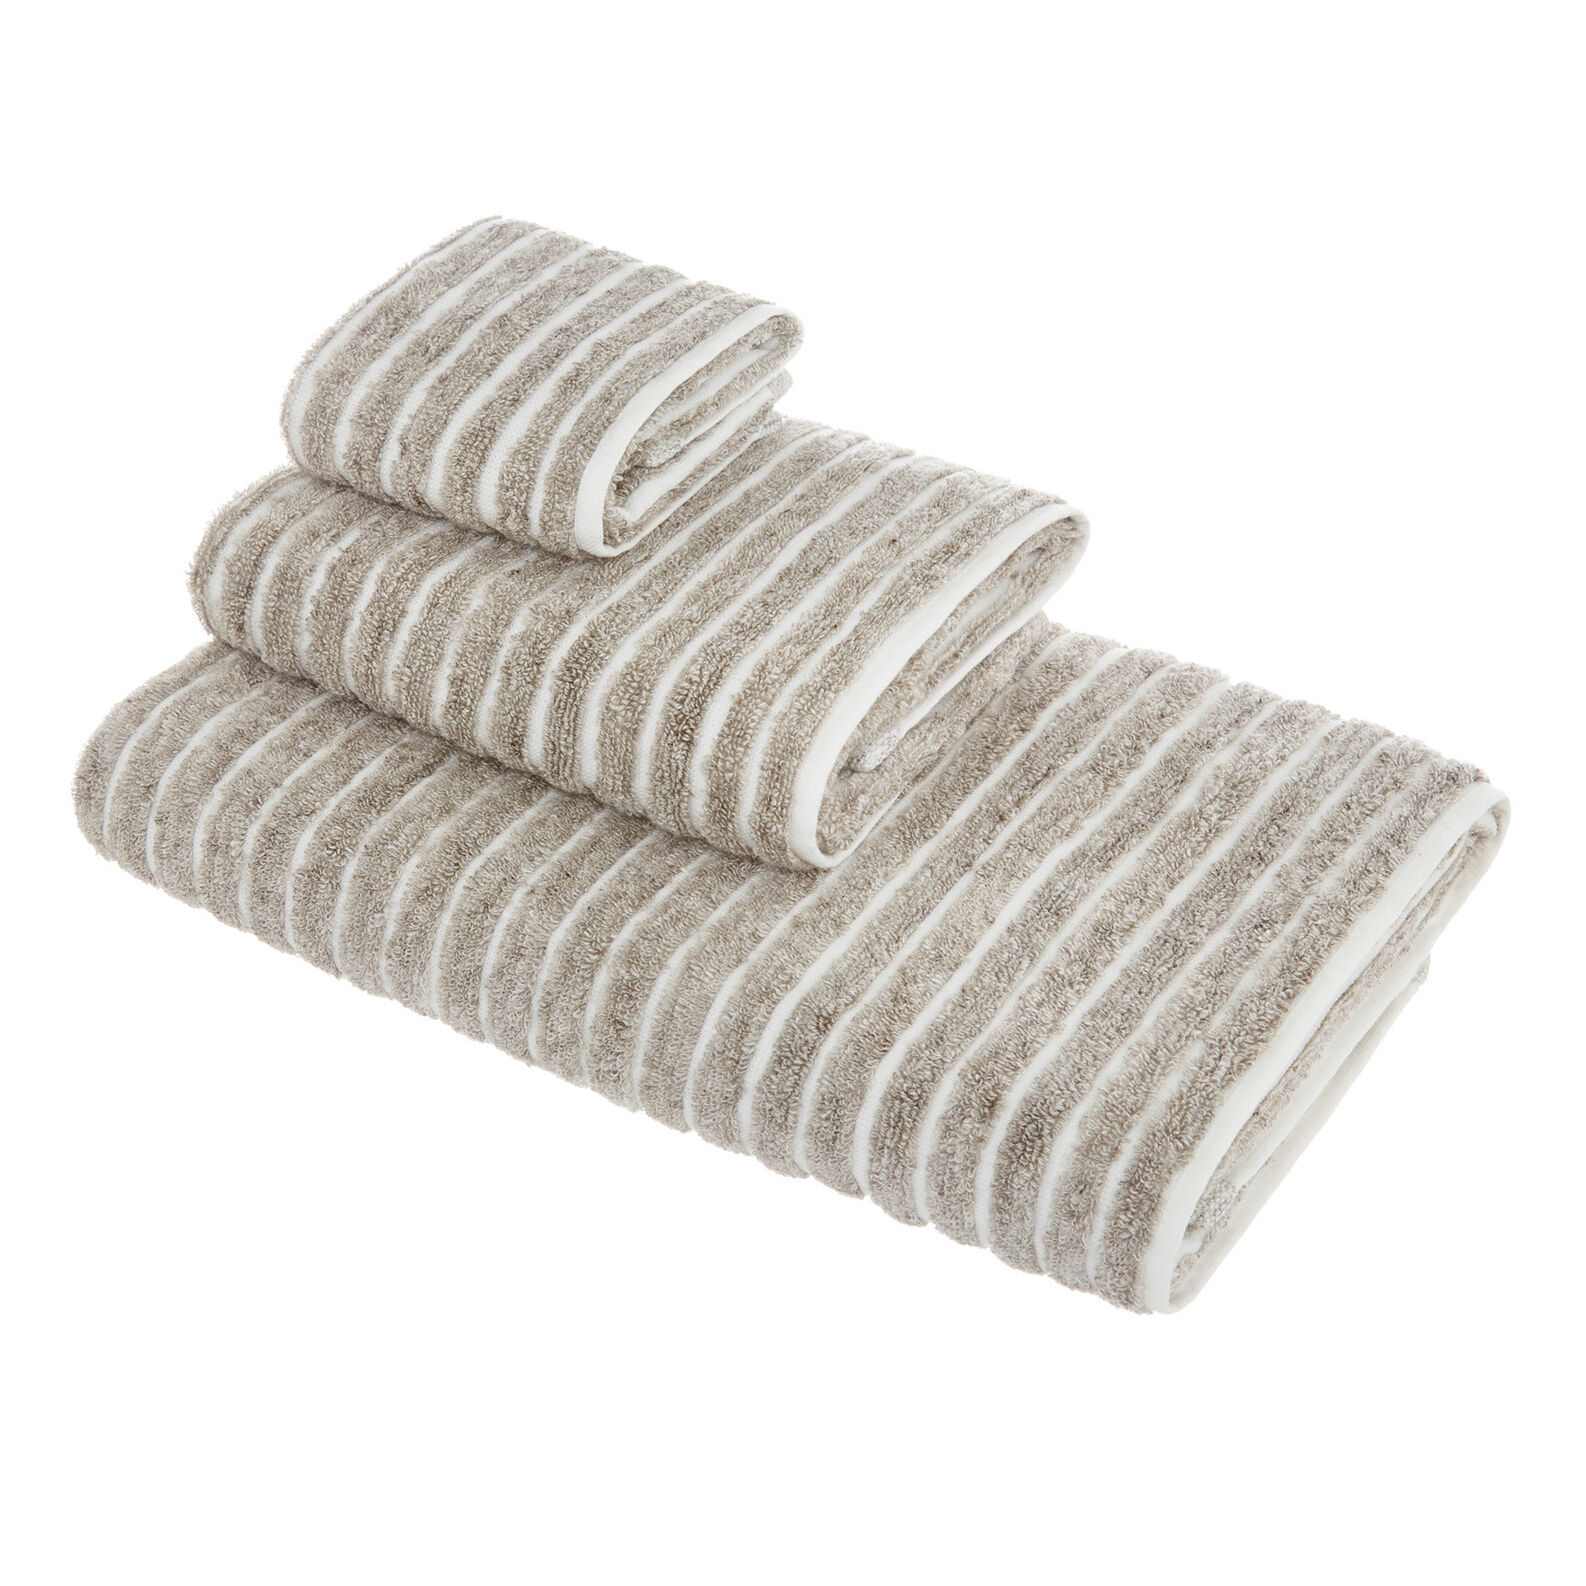 Thermae striped towel in 100% cotton